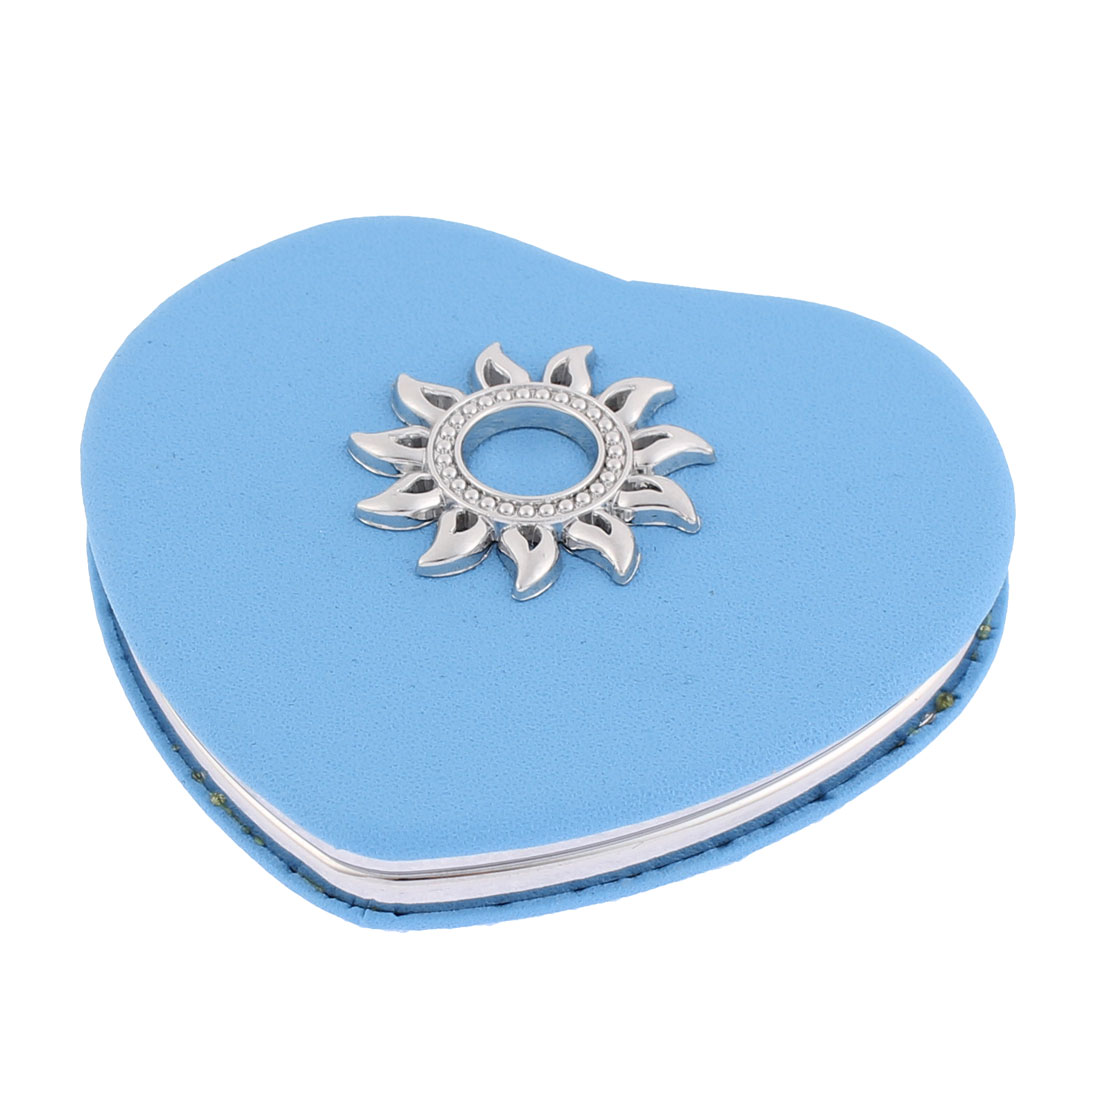 Heart Shaped Sunflower Detailing Magnify Cosmetic Compact Mirror Light Blue